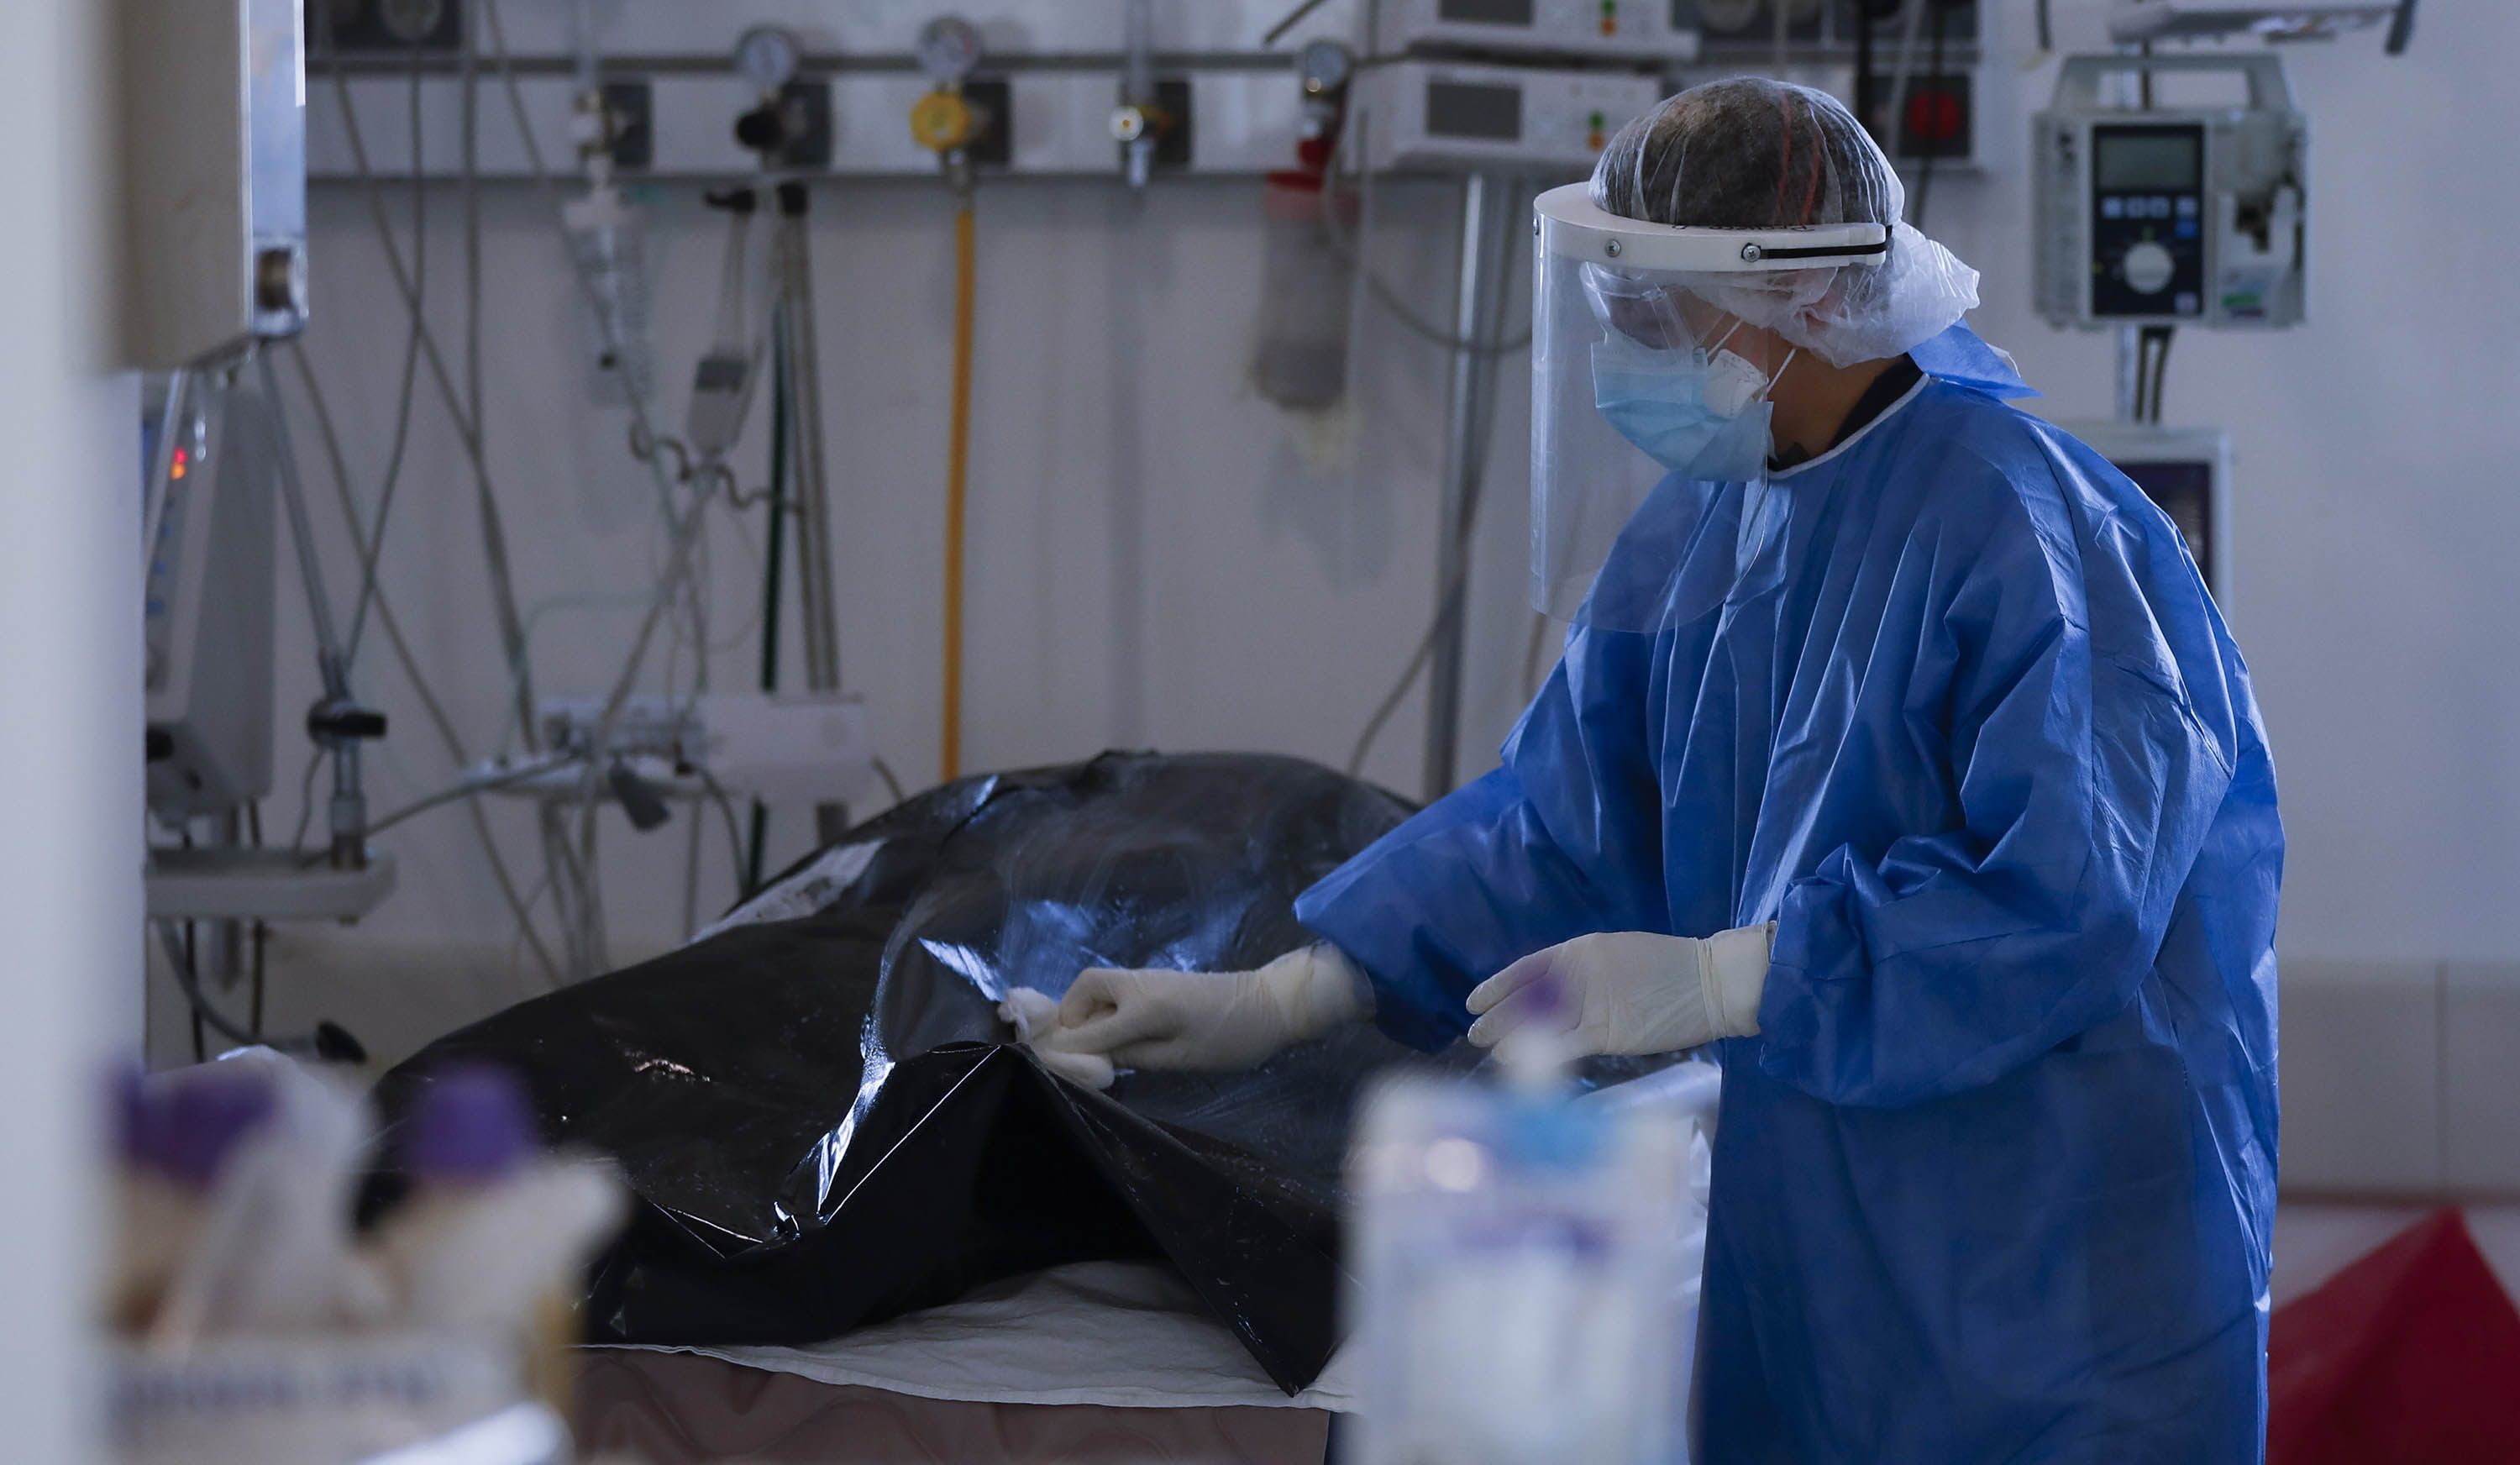 A health worker cleans the bodybag of a Covid-19 victim in the intensive care uni of a hospital in Buenos Aires, Argentina, on August 18.